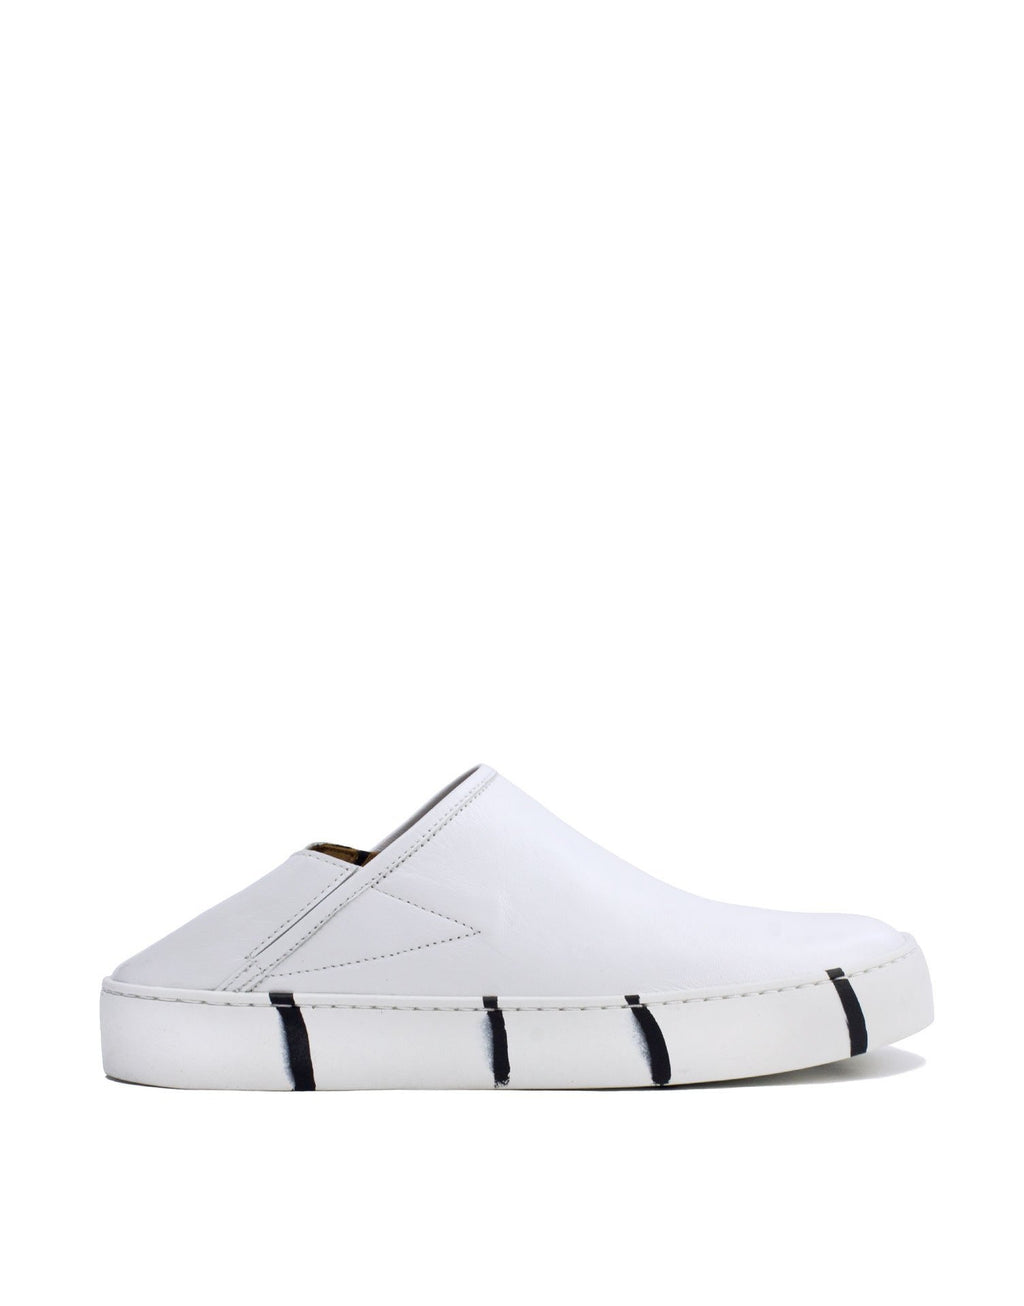 White slip on sneaker by designer Georgina Goodman with unique stripes on the recycled sole. No two pairs the same.